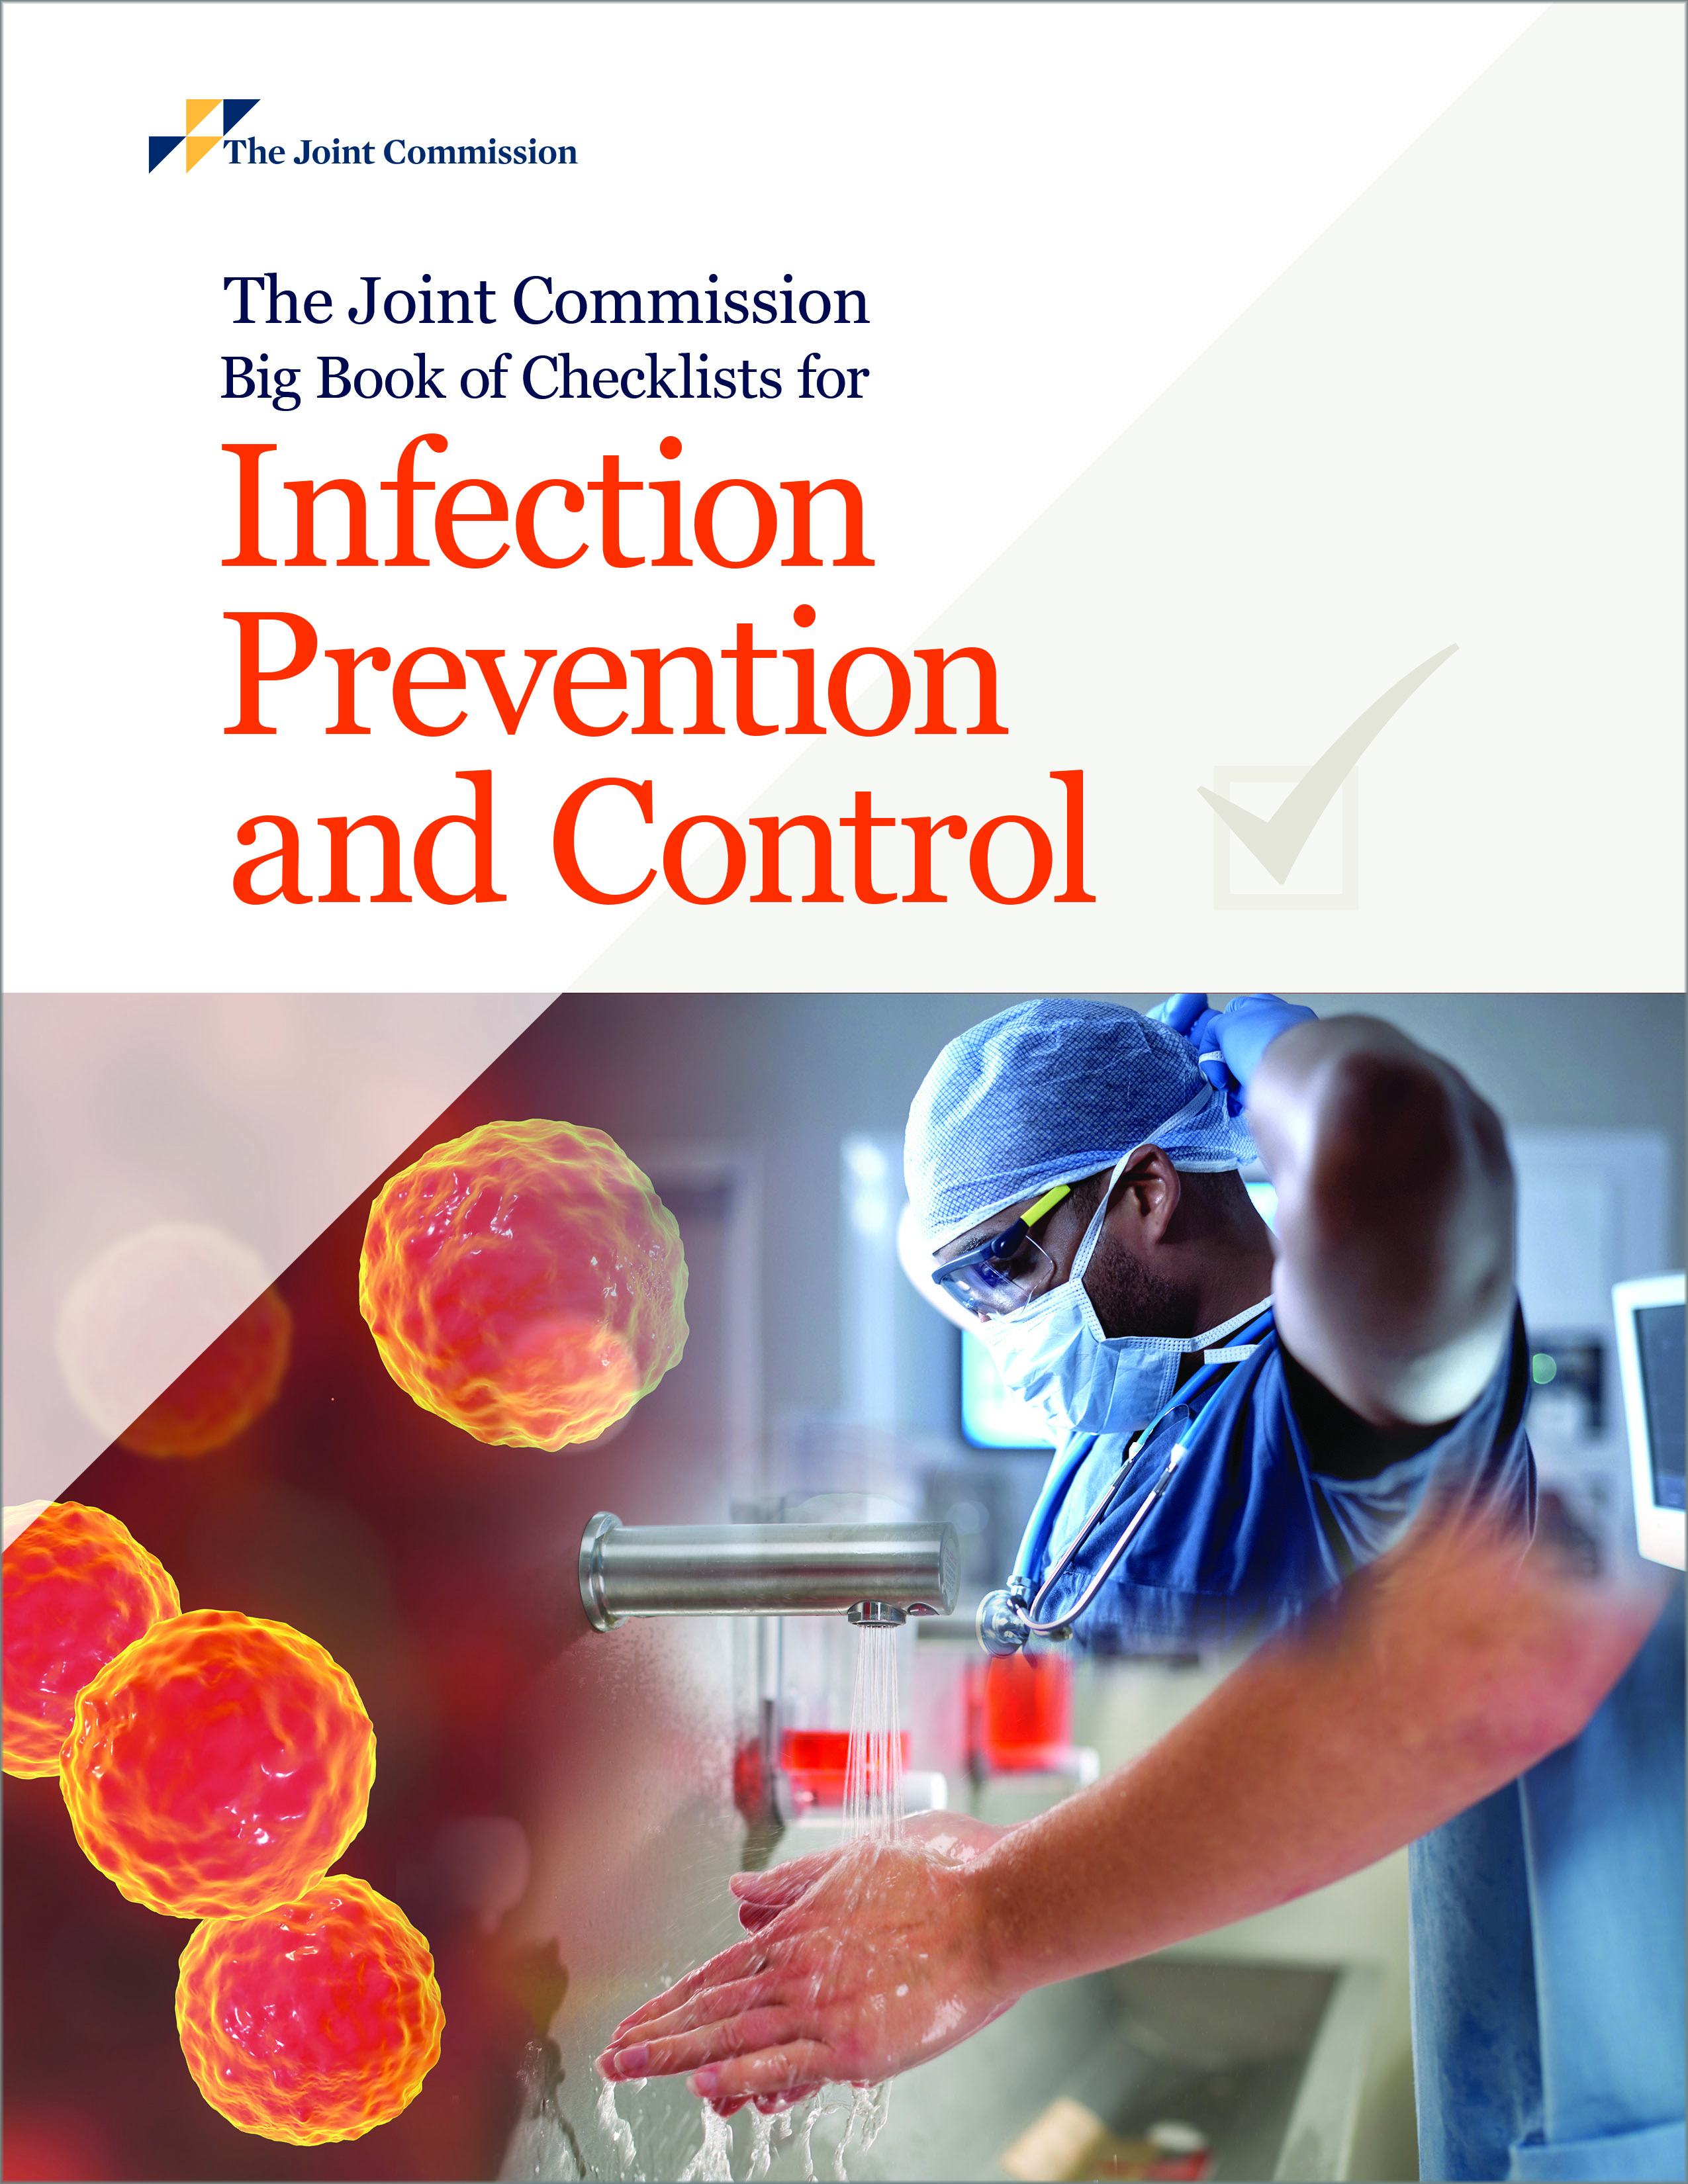 The Joint Commission Big Book of Infection Prevention and Control Checklists